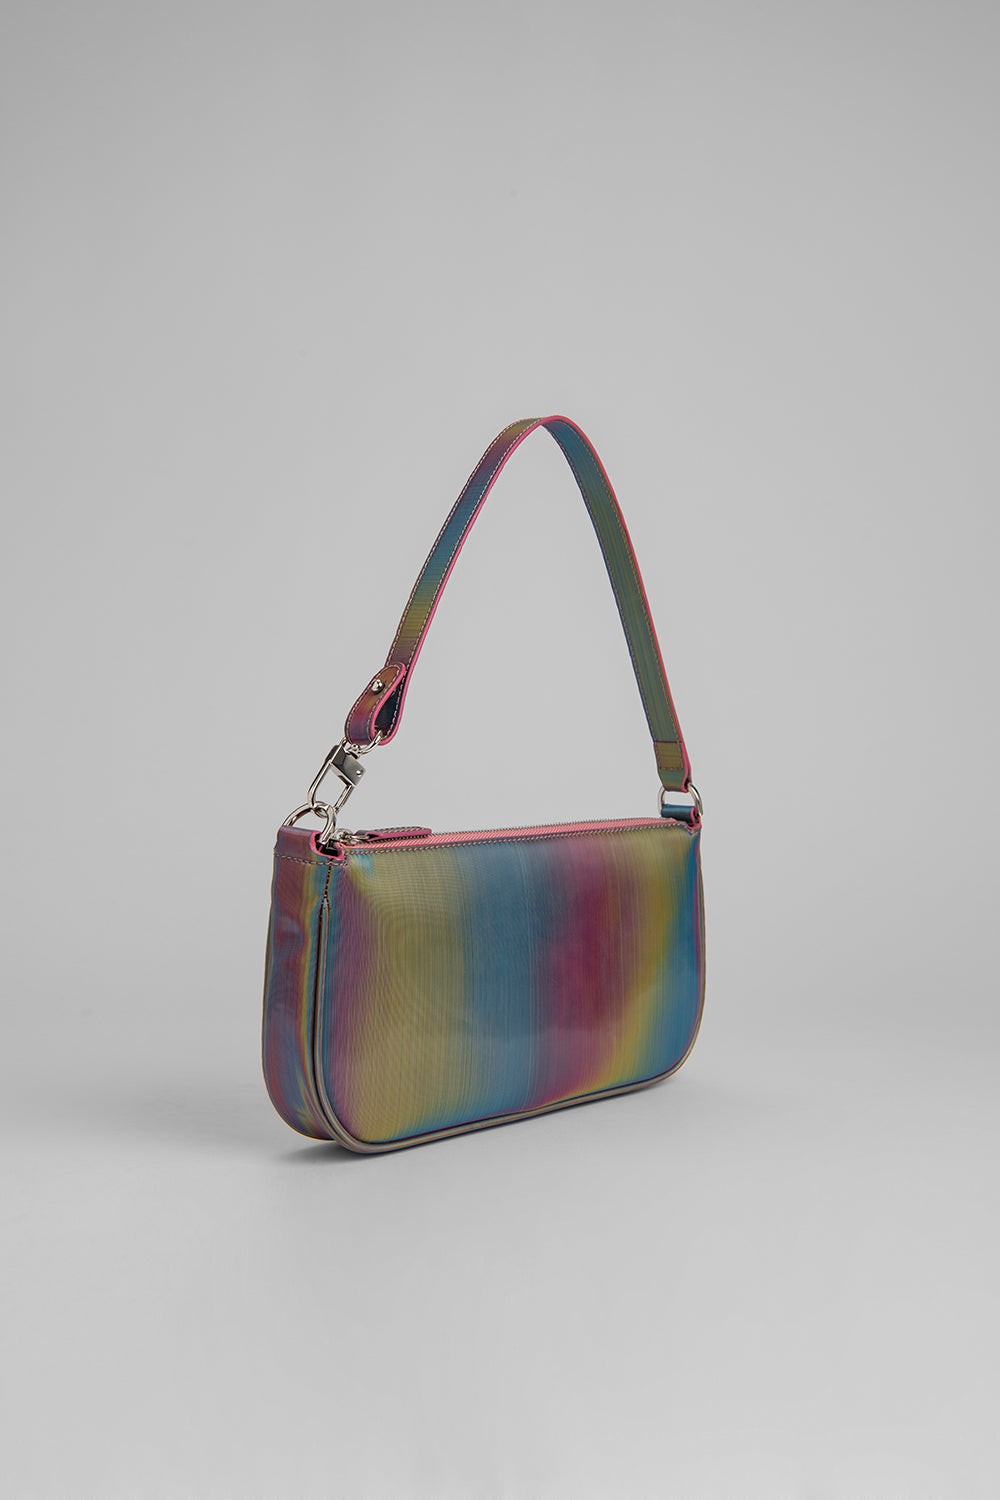 Rachel Rainbow Leather